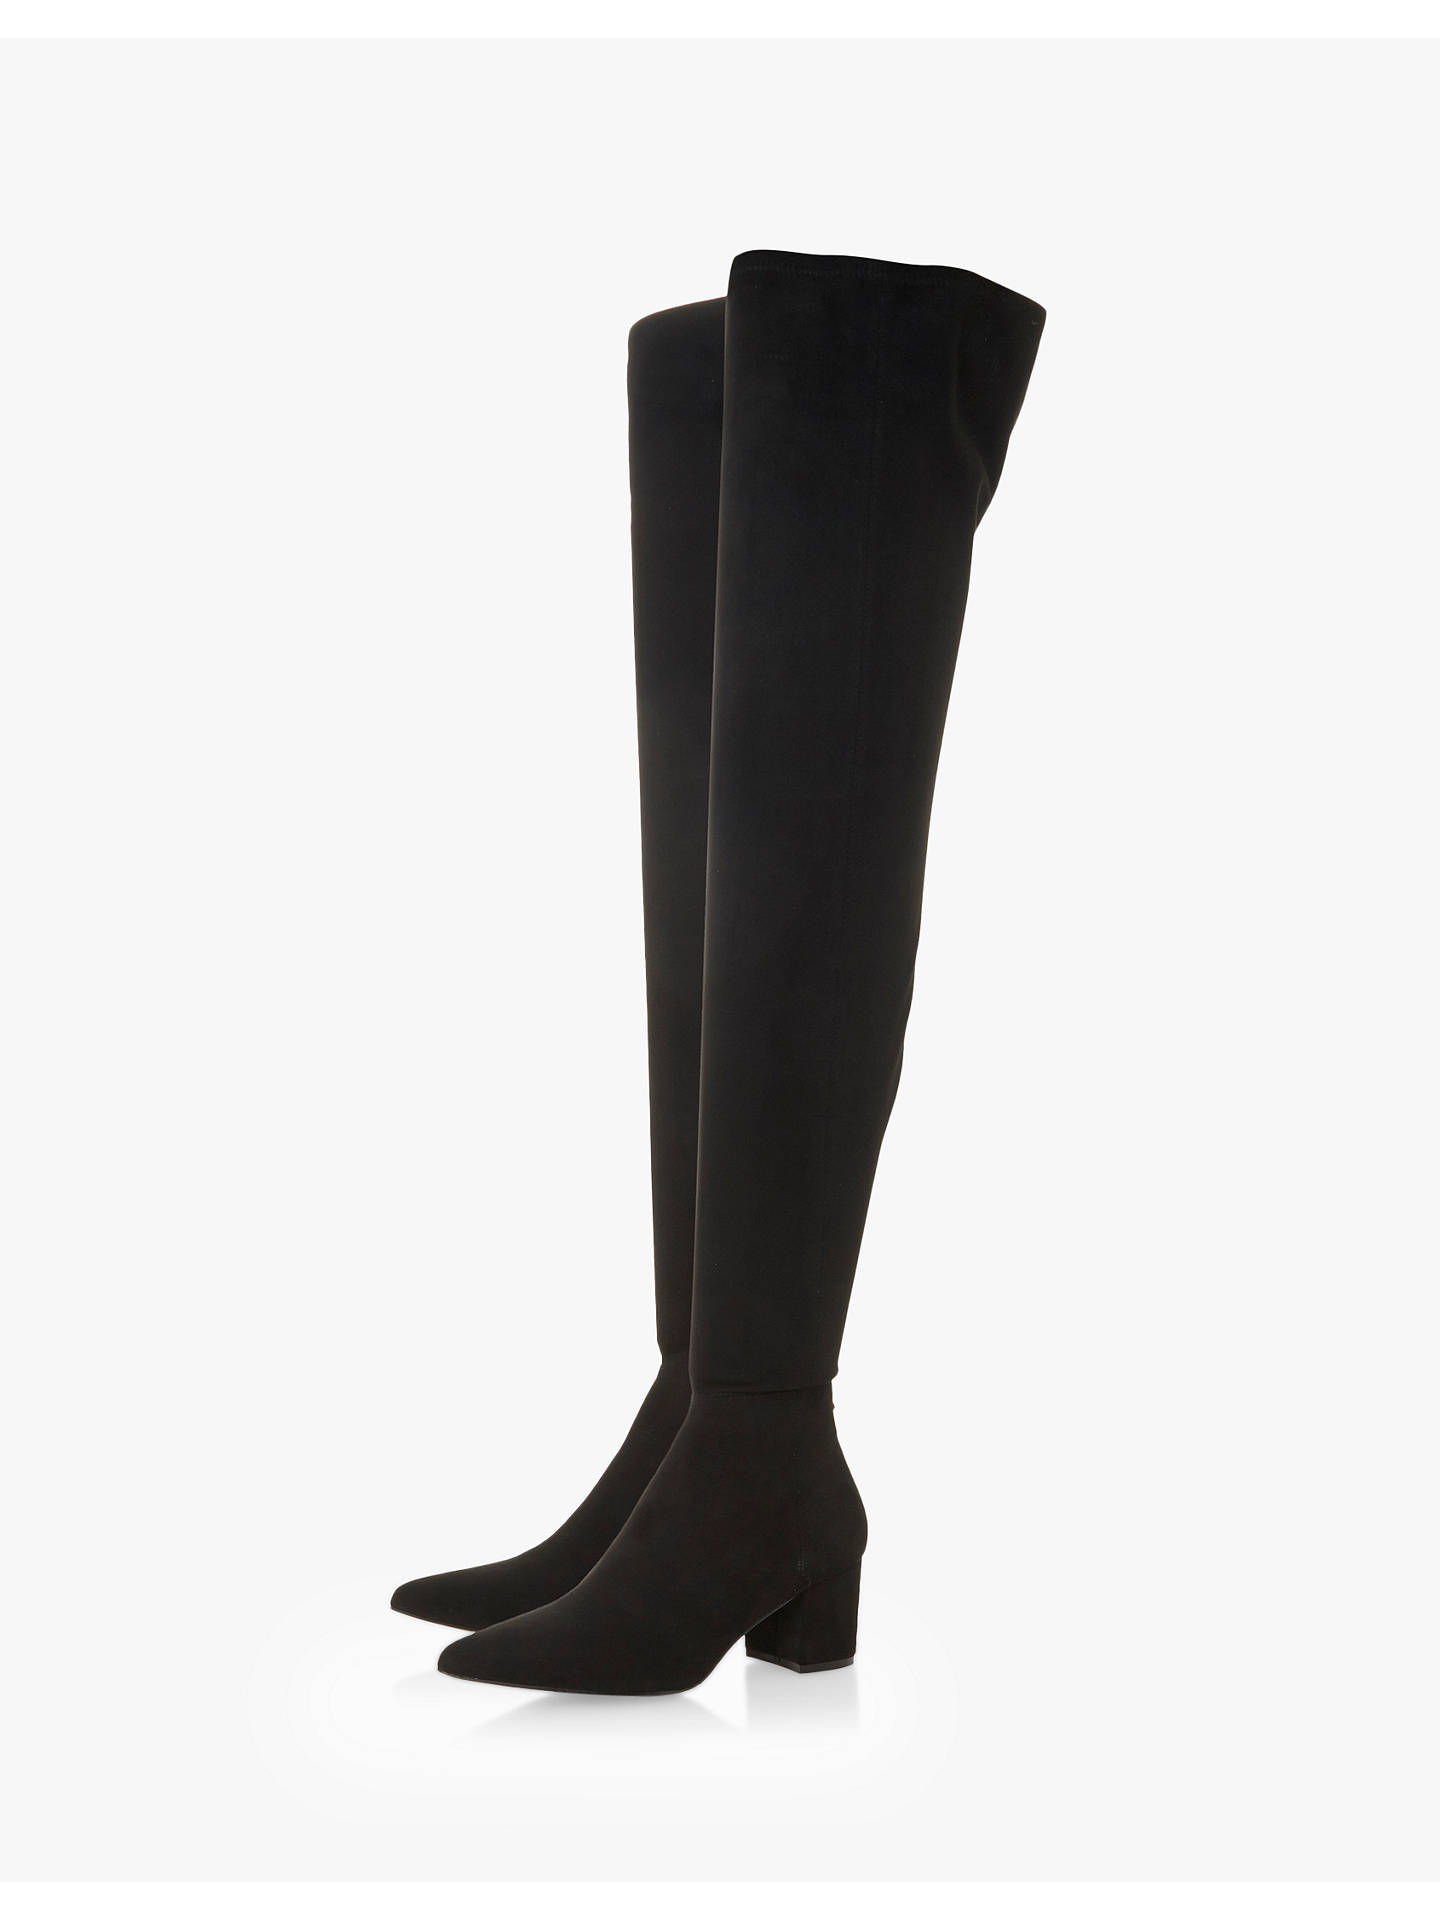 BuySteve Madden Bolted Block Heel Over The Knee Boots, Black, 3 Online at johnlewis.com